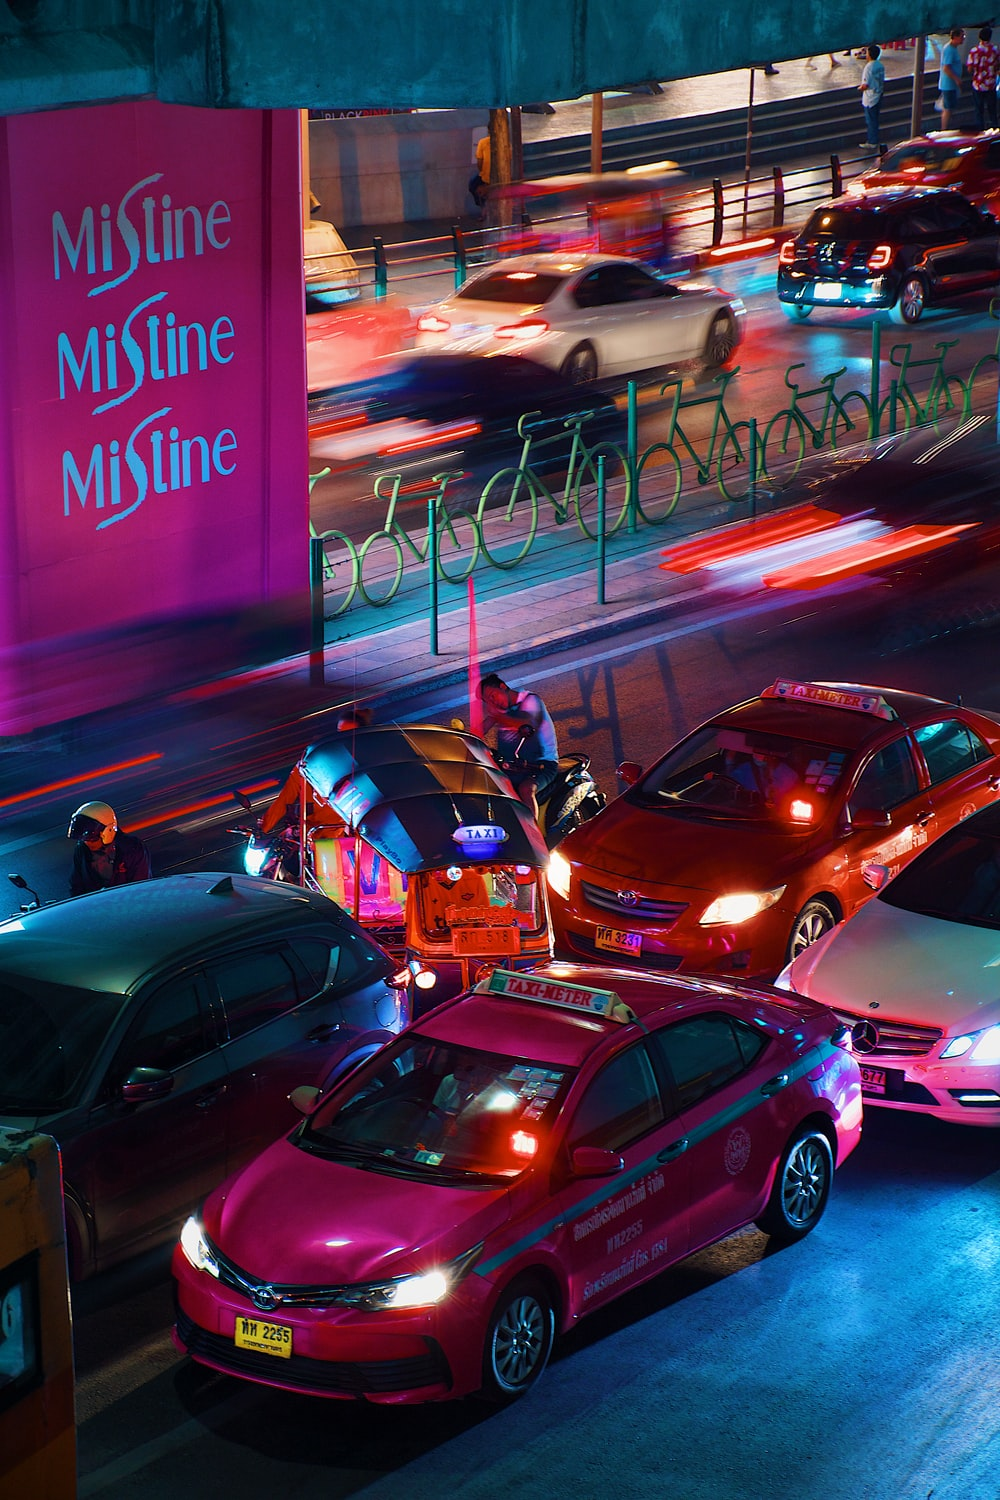 cars parked on parking lot during night time